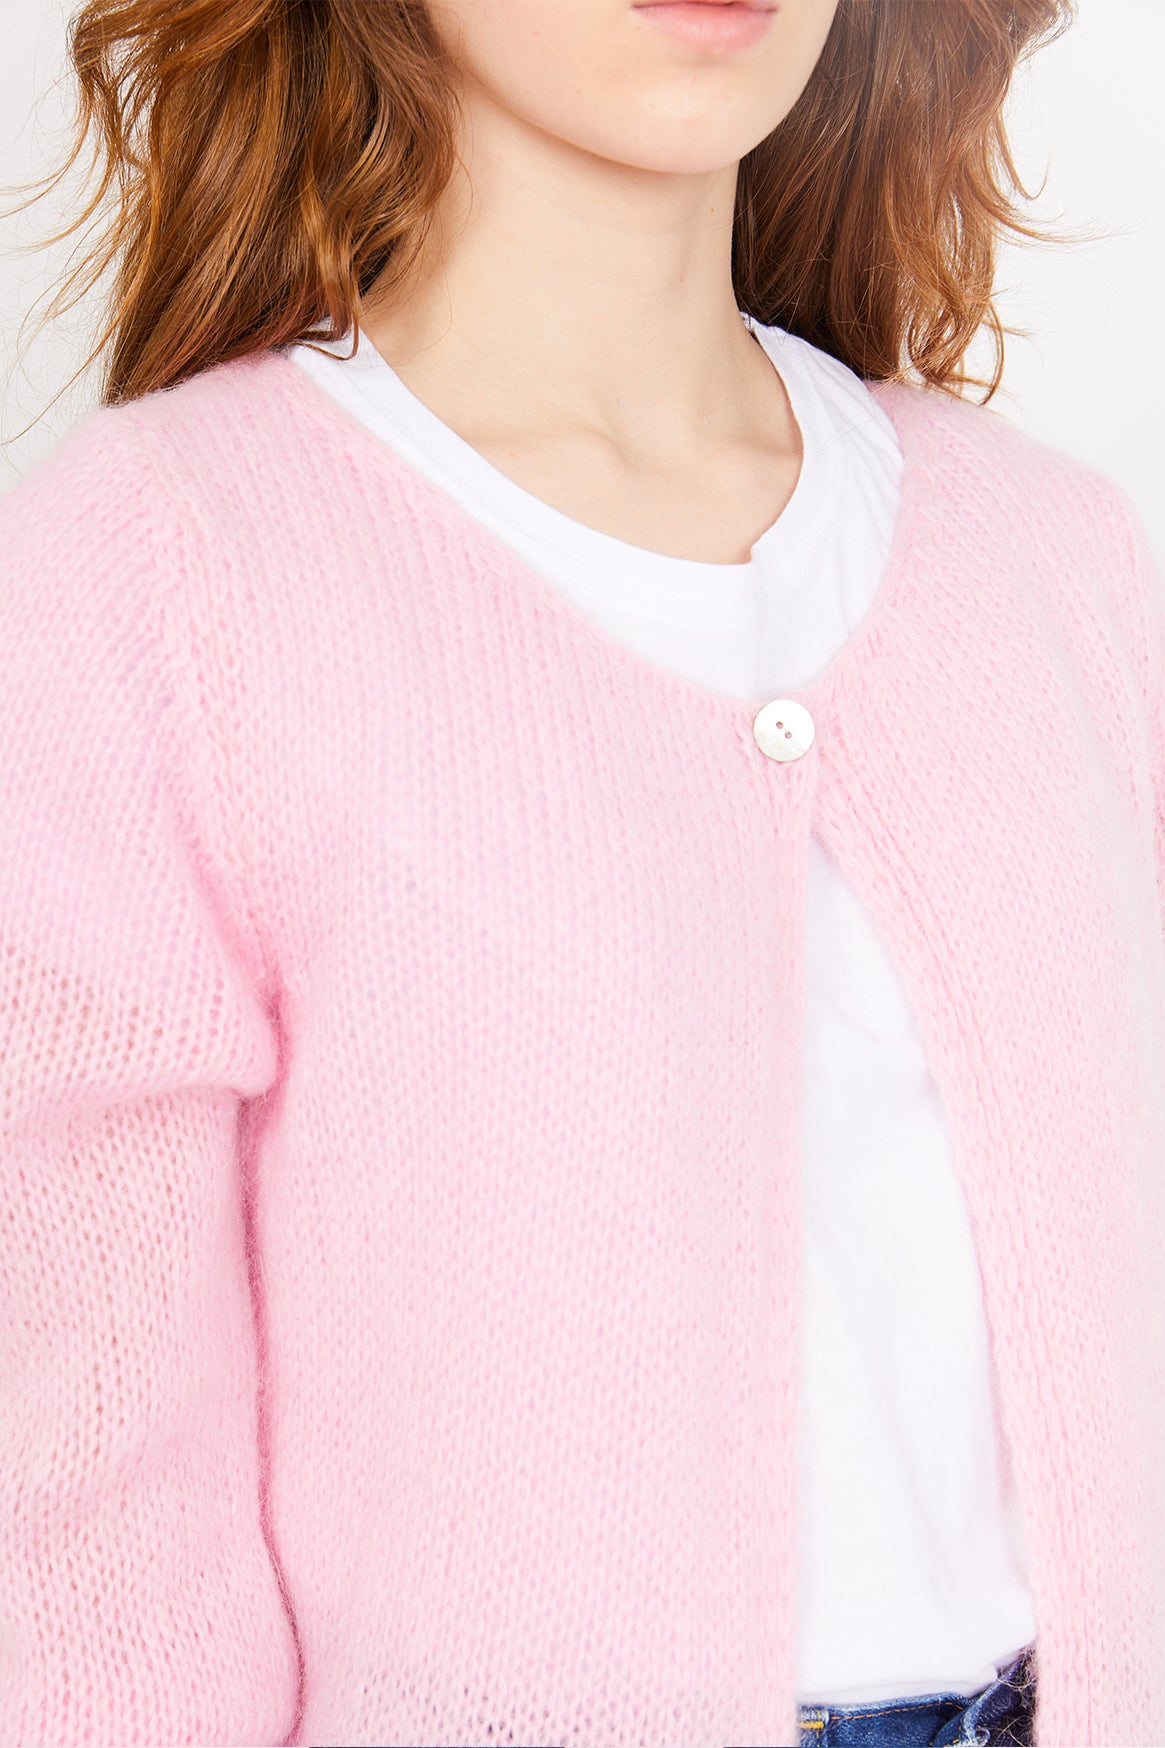 Image of Pink Cardigan Sweater